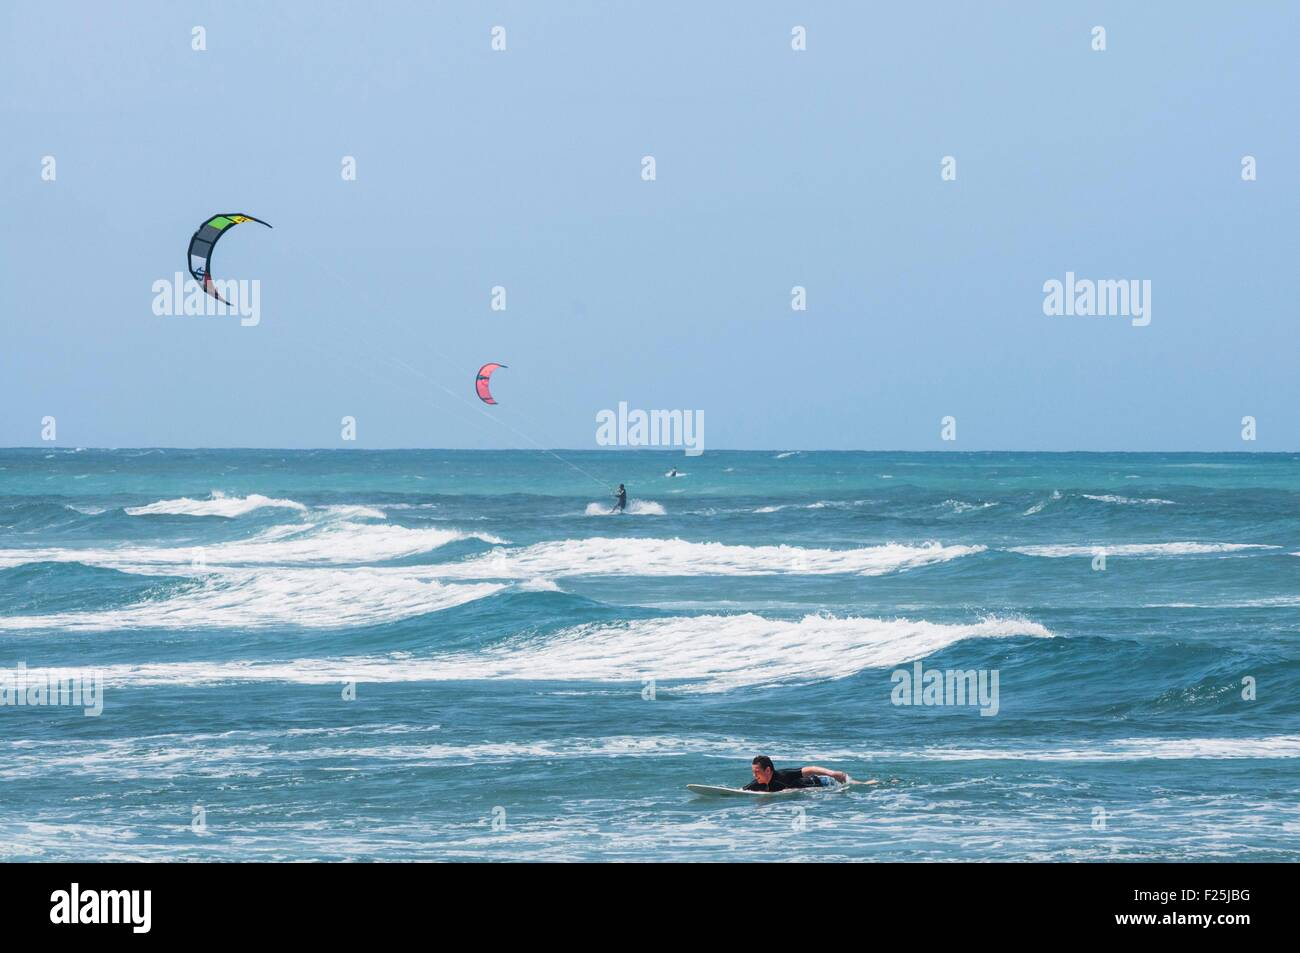 Barbados island, sur and kitsurf at Ananias Point, south coast, the Surfer's Point, Christ Church parish - Stock Image